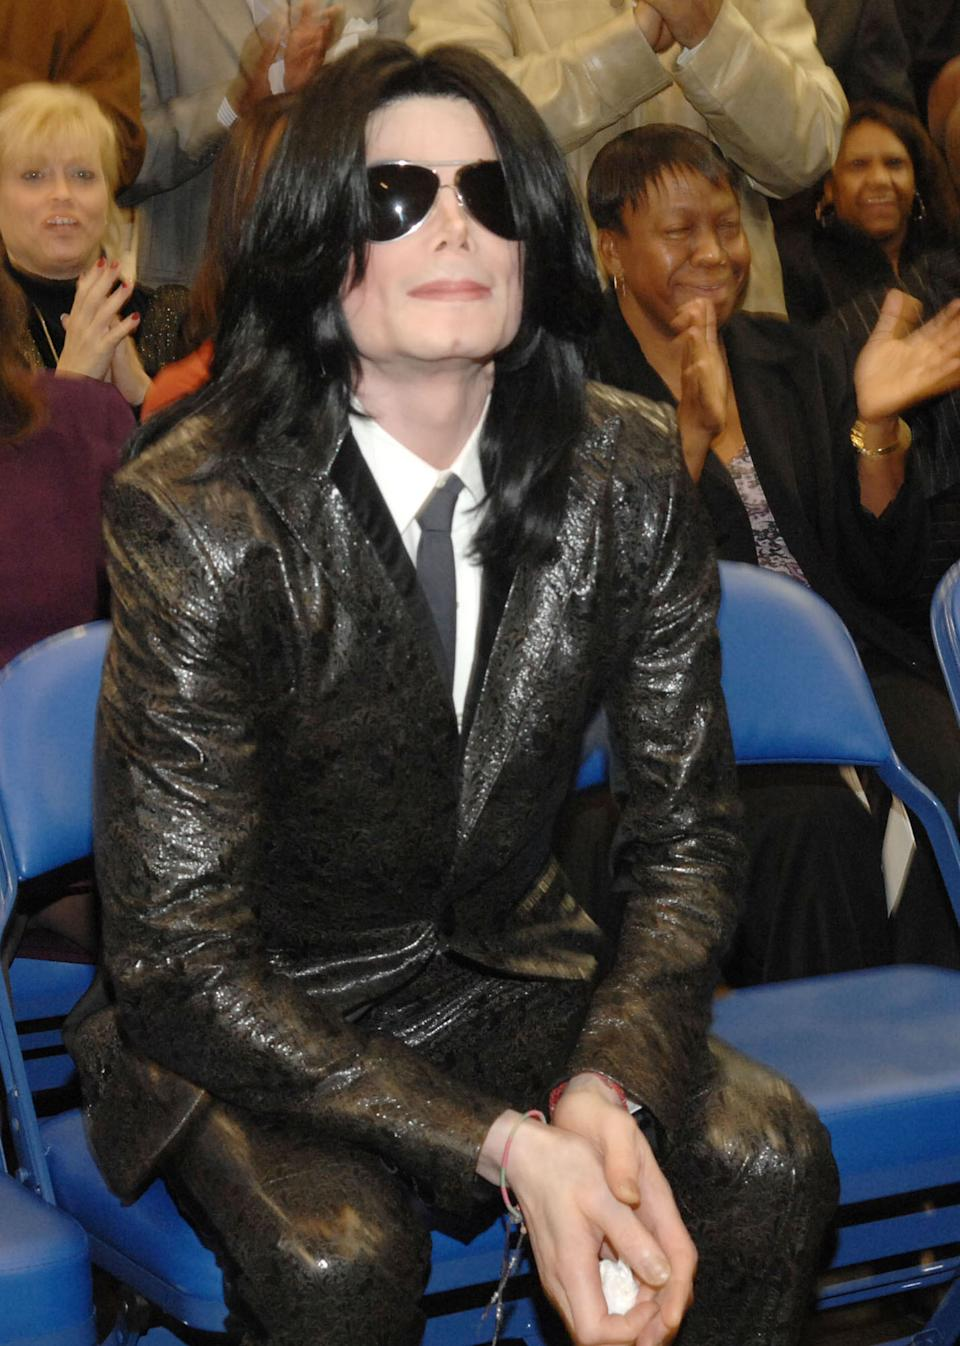 Michael Jackson pays his respects to the late James Brown who is lying in repose at the James Brown Arena in Augusta, Georgia. Brown, widely known as the Godfather of Soul, passed away on Christmas Day. (Photo by Rick Diamond/WireImage)